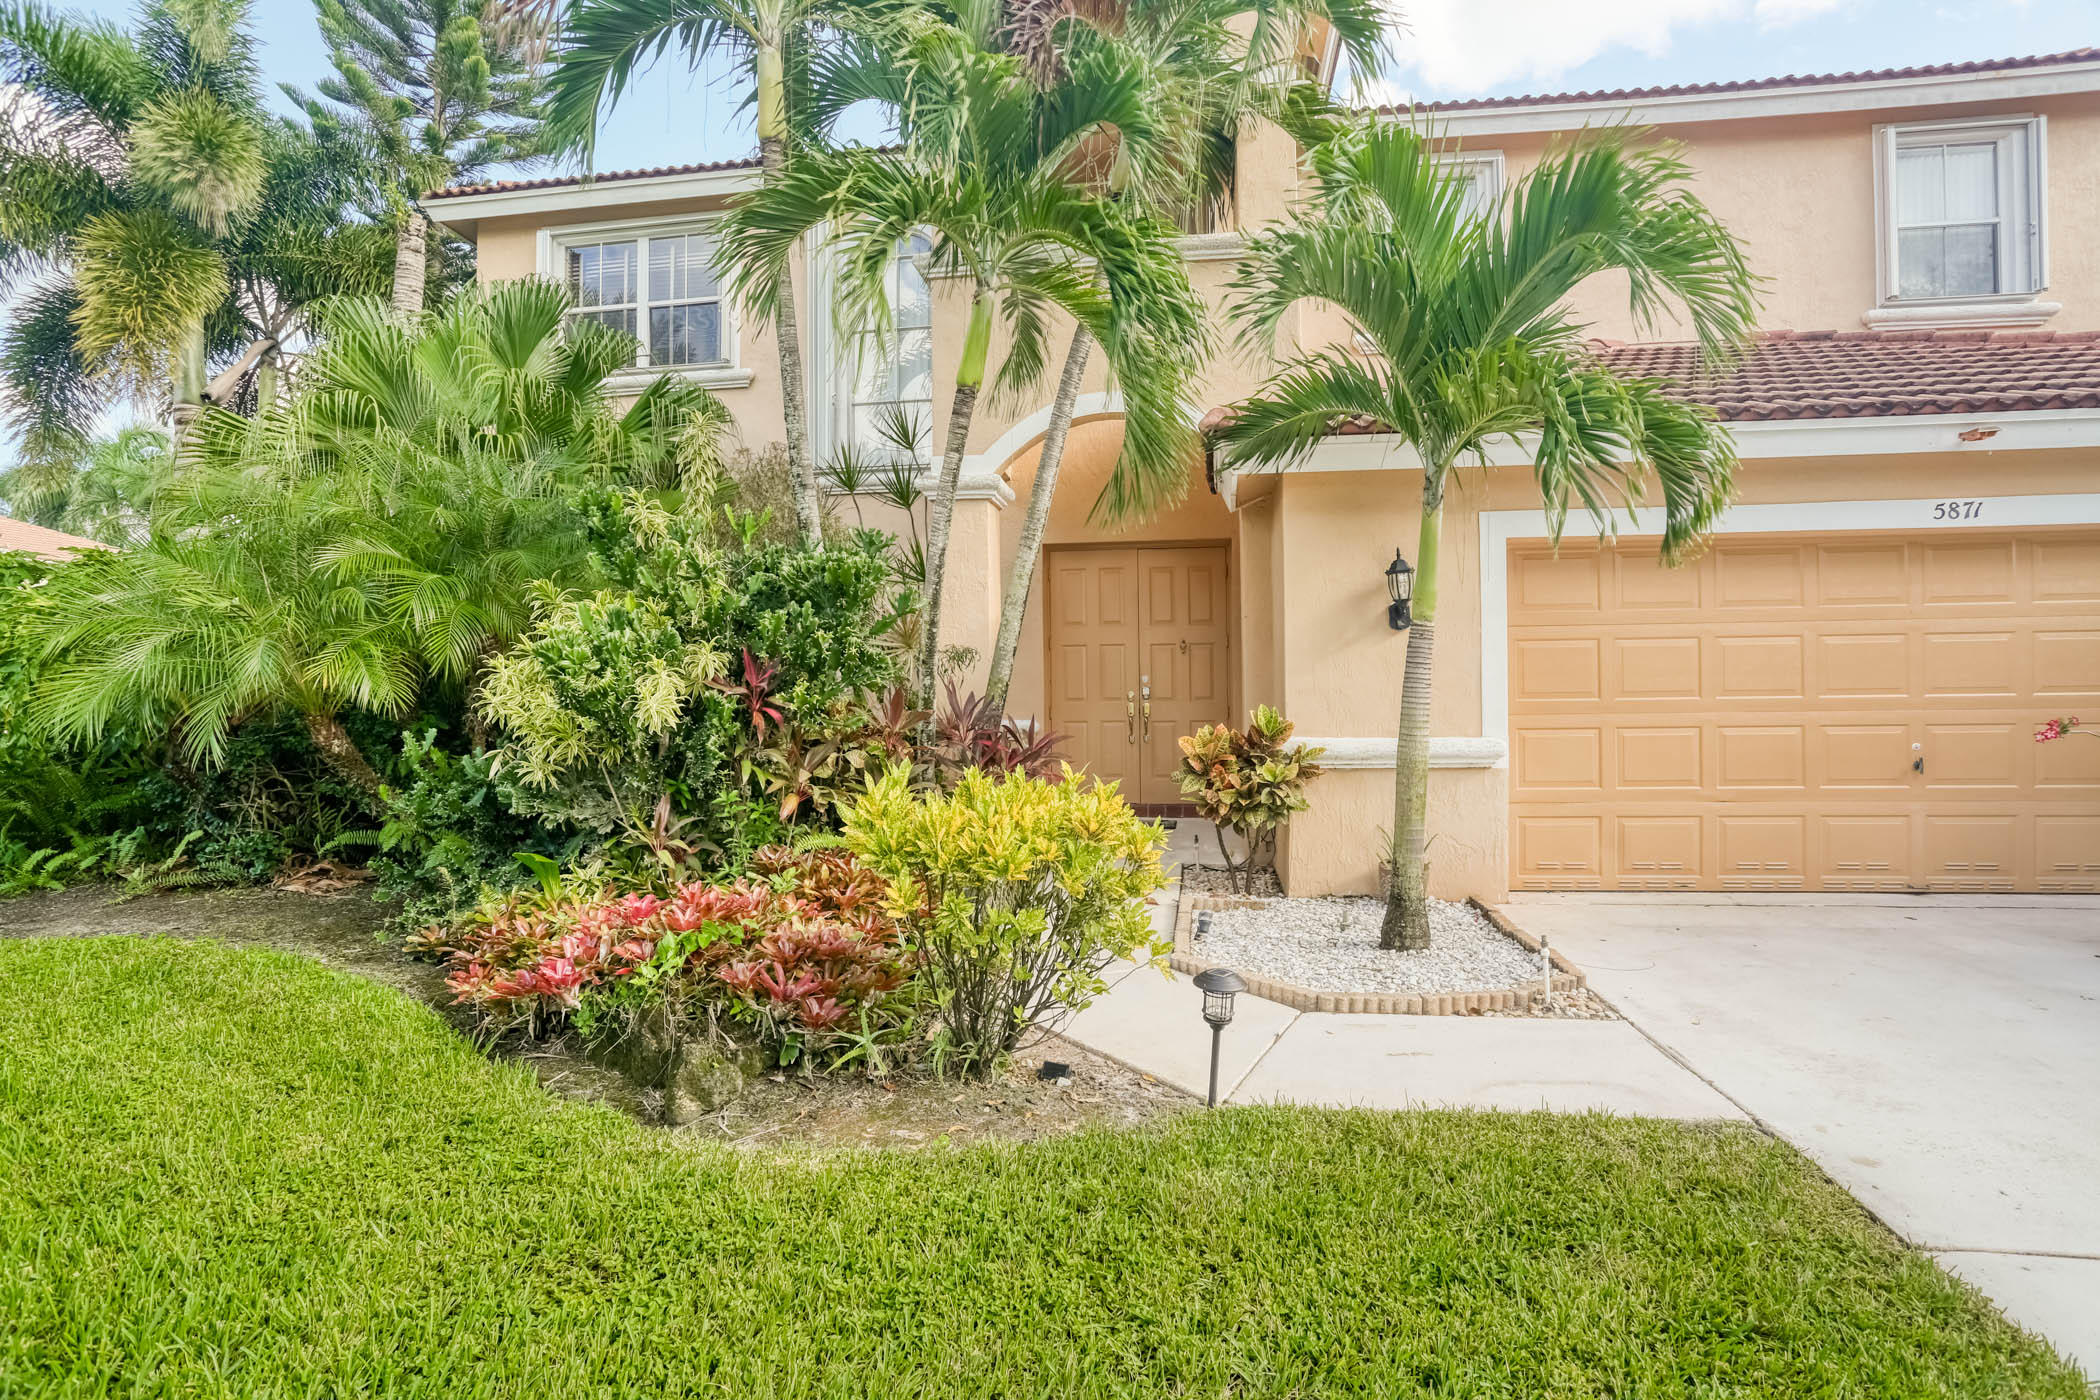 Photo of 5871 La Gorce Circle, Lake Worth, FL 33463